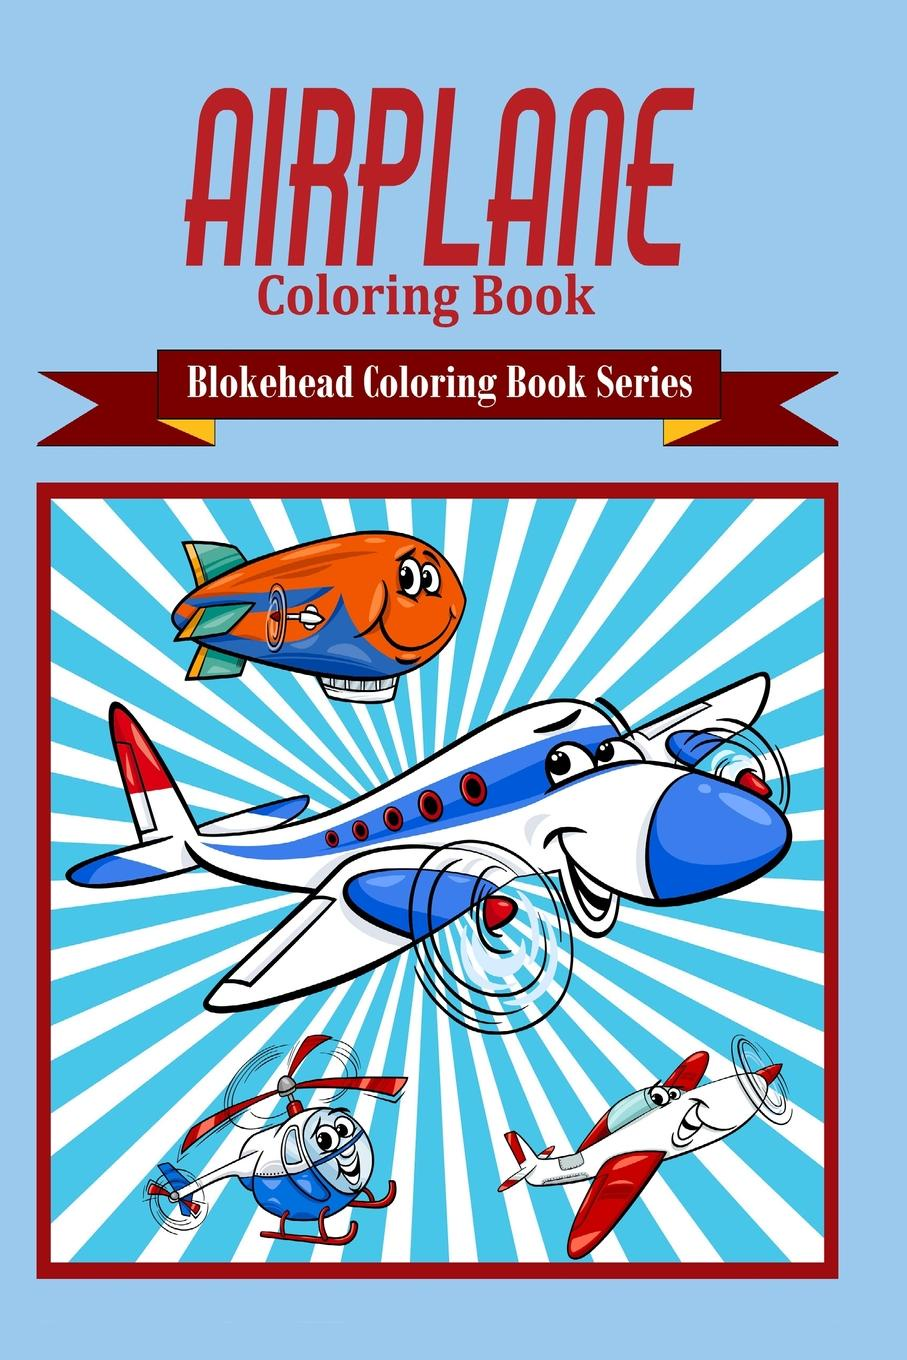 The Blokehead Airplane Coloring Book sandra staines crazy maze coloring book